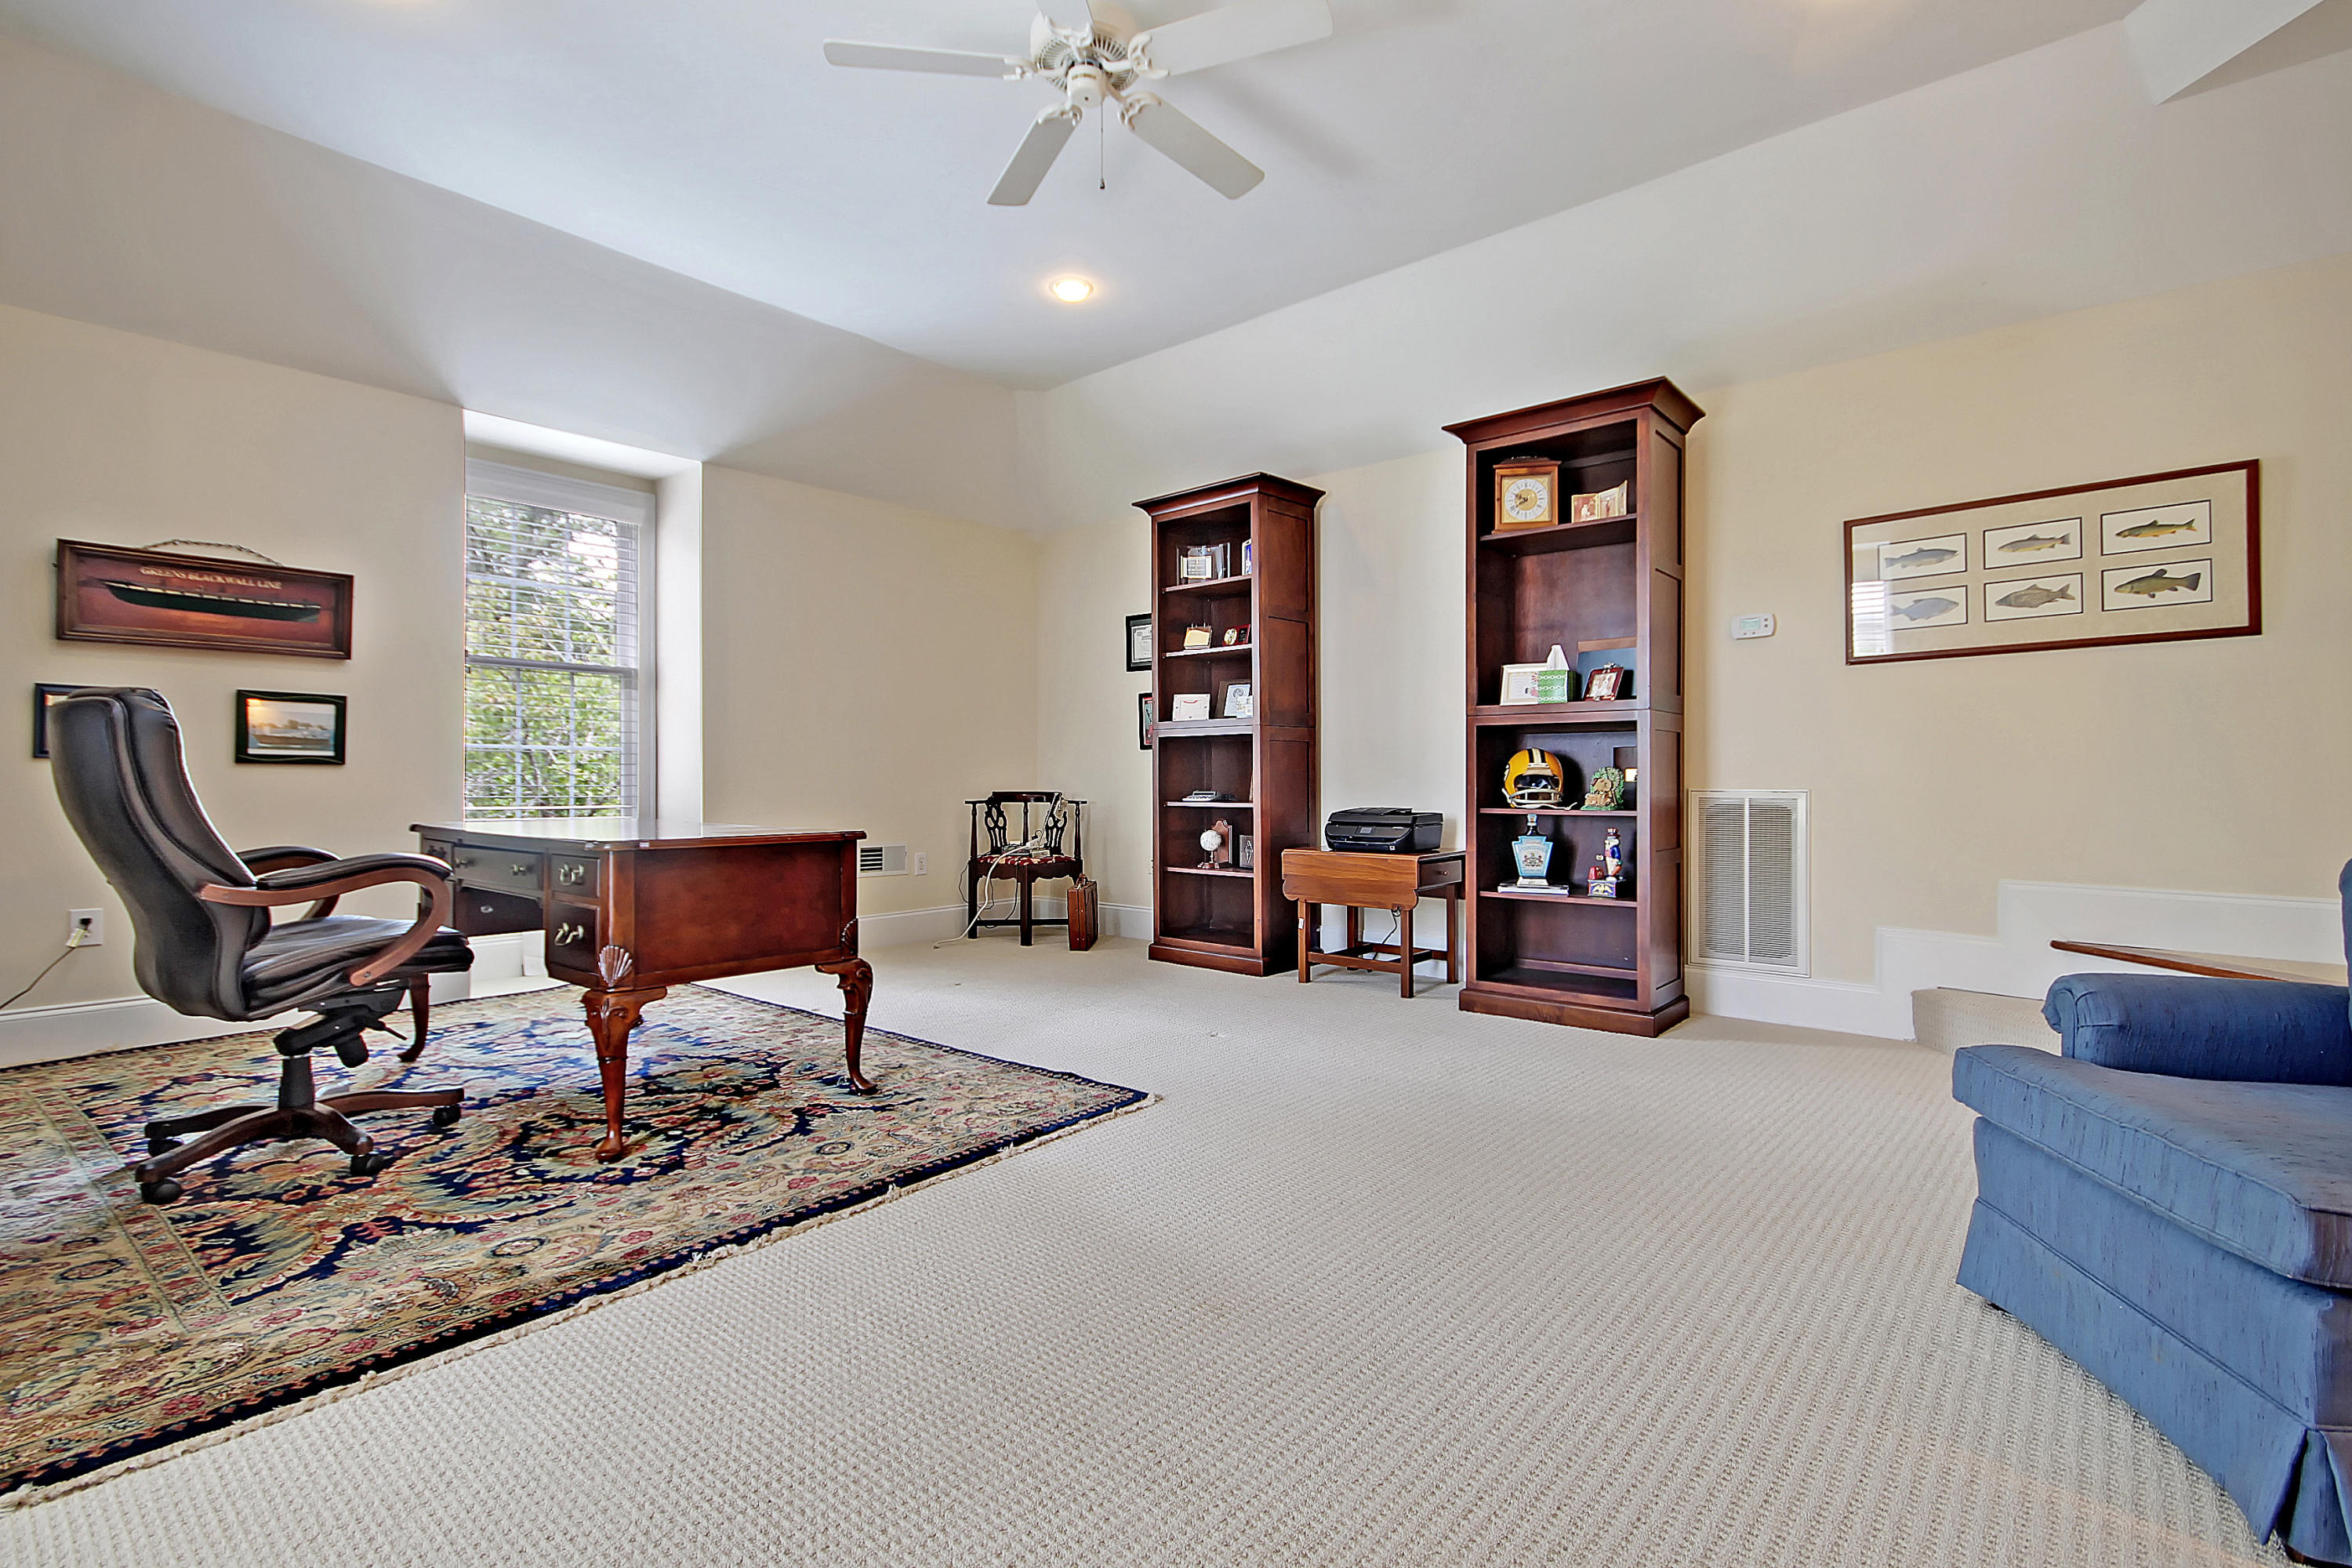 Dunes West Homes For Sale - 1829 Shell Ring, Mount Pleasant, SC - 23